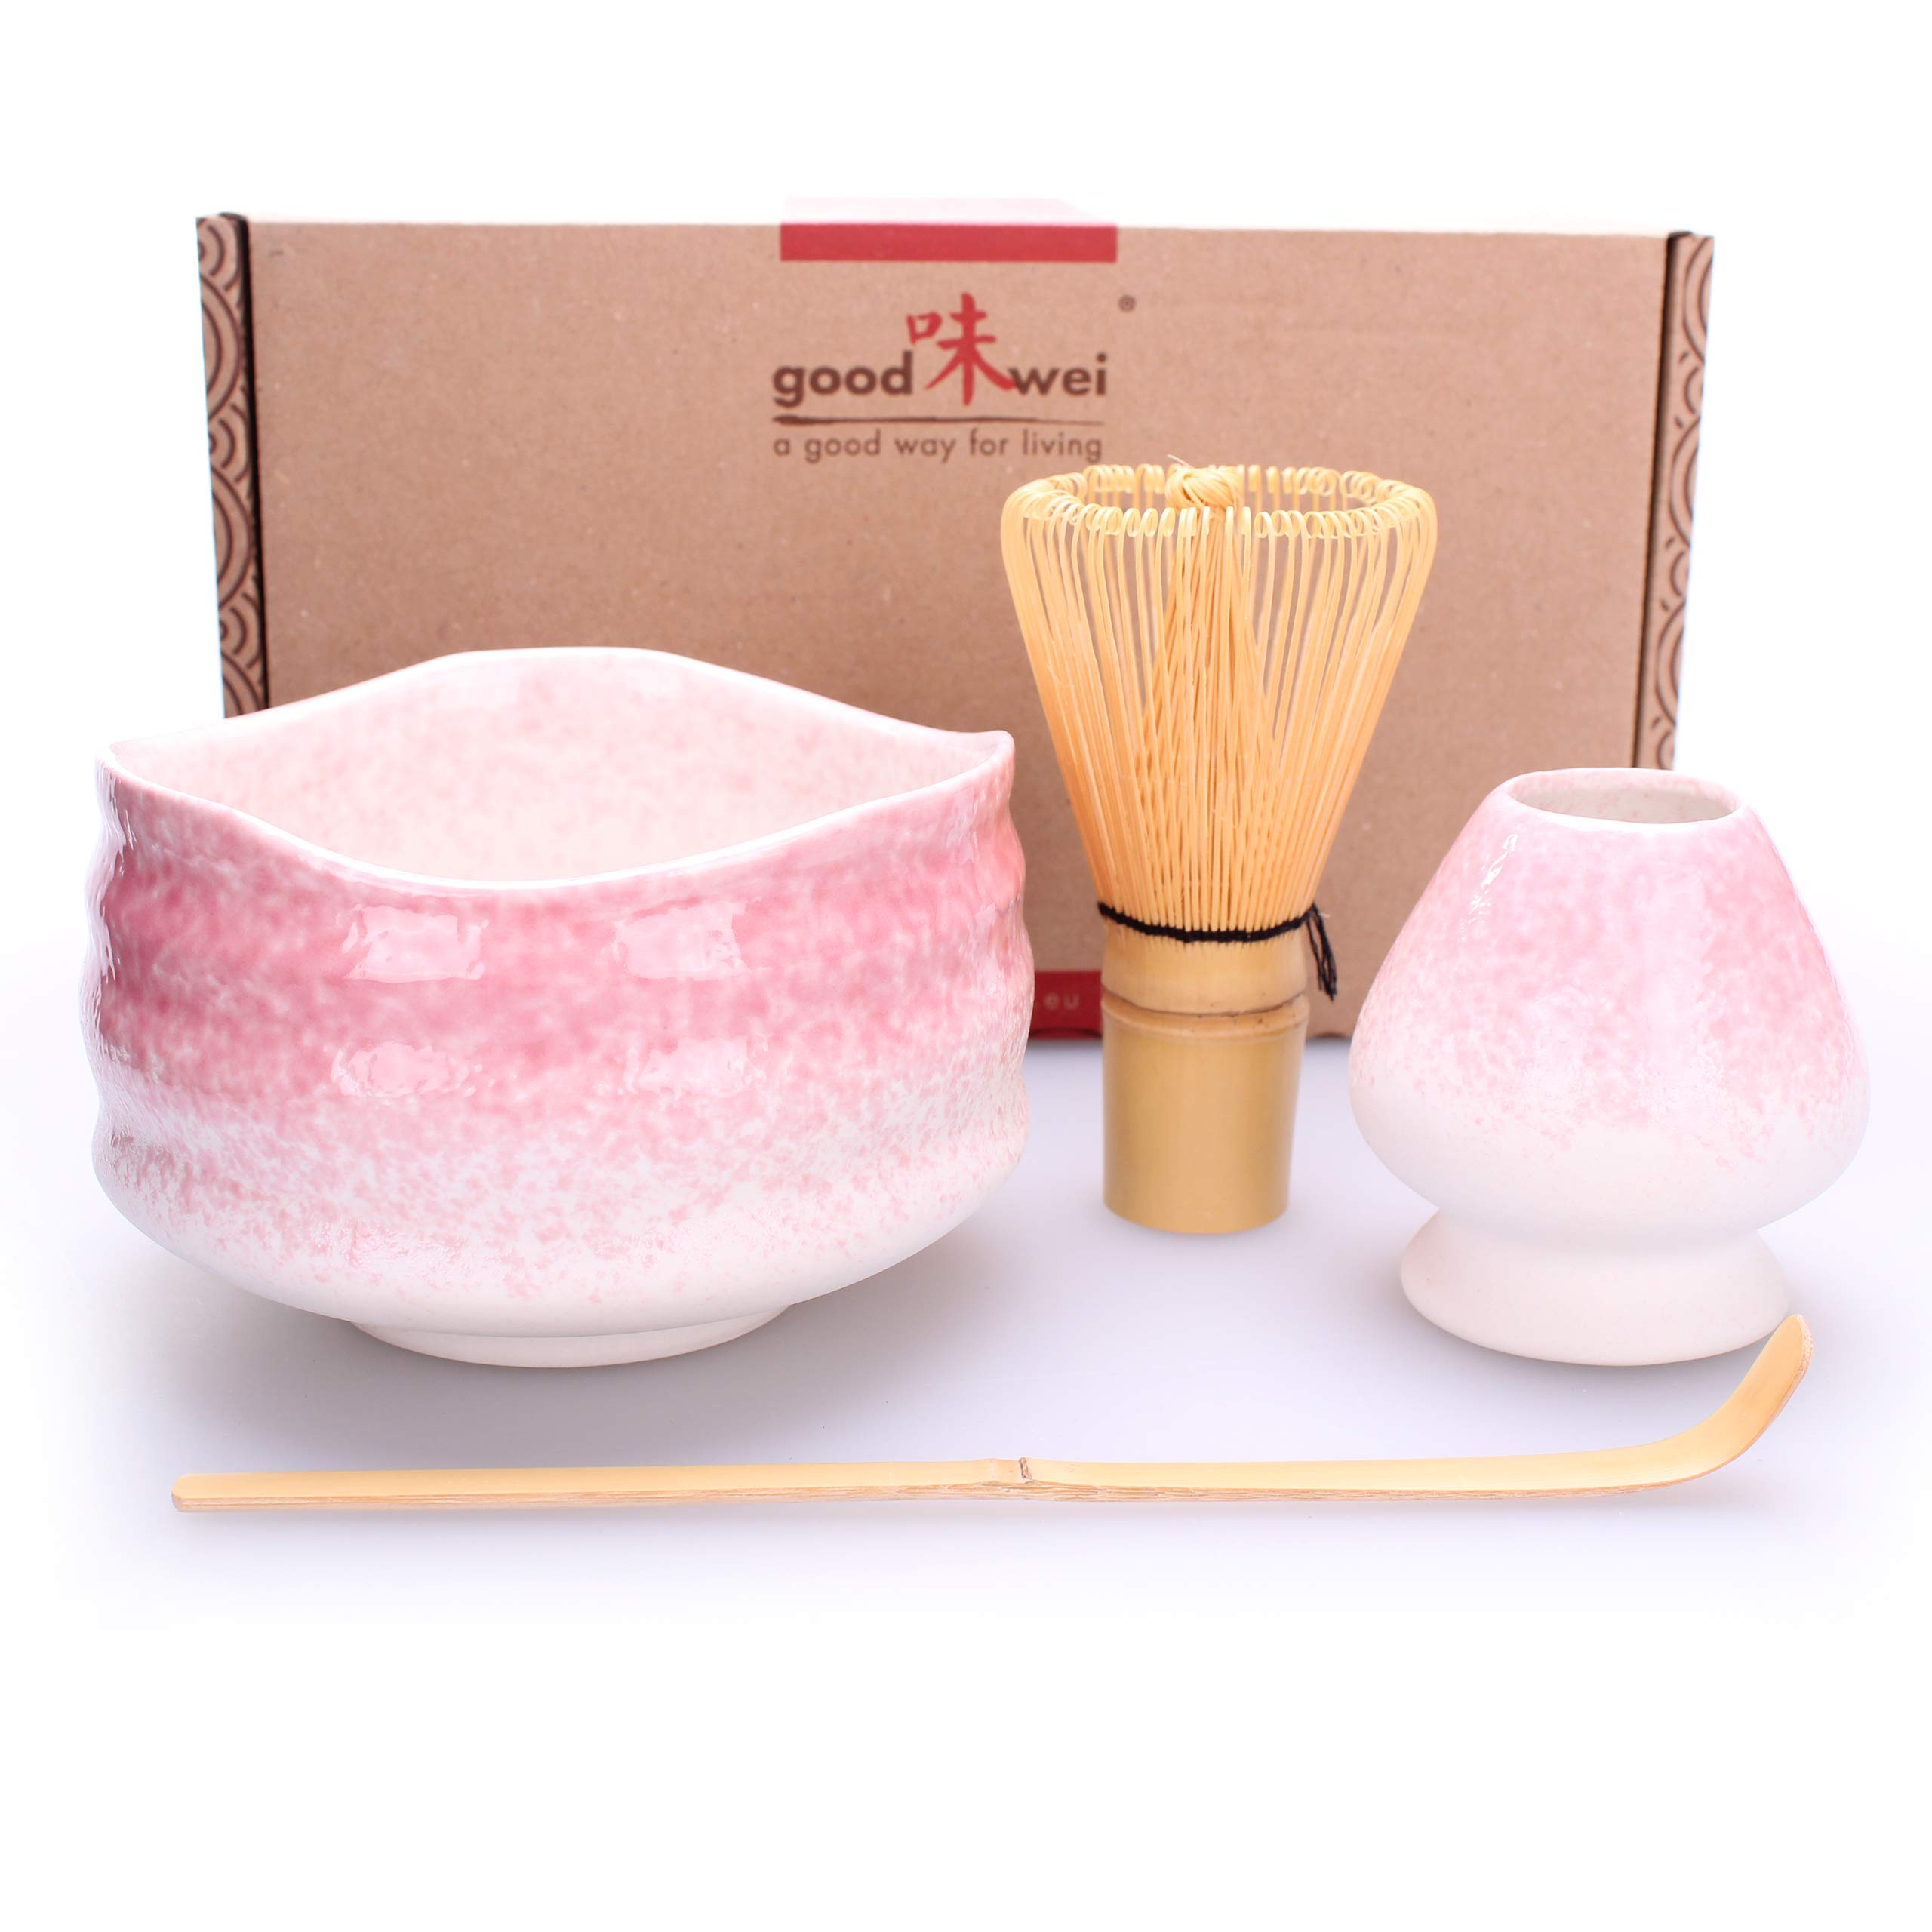 Goodwei Premium Matcha Tea Set ''Sakura'' - Ceremonial Bowl Chawan, Whisk and Holder - Gift Box (120)